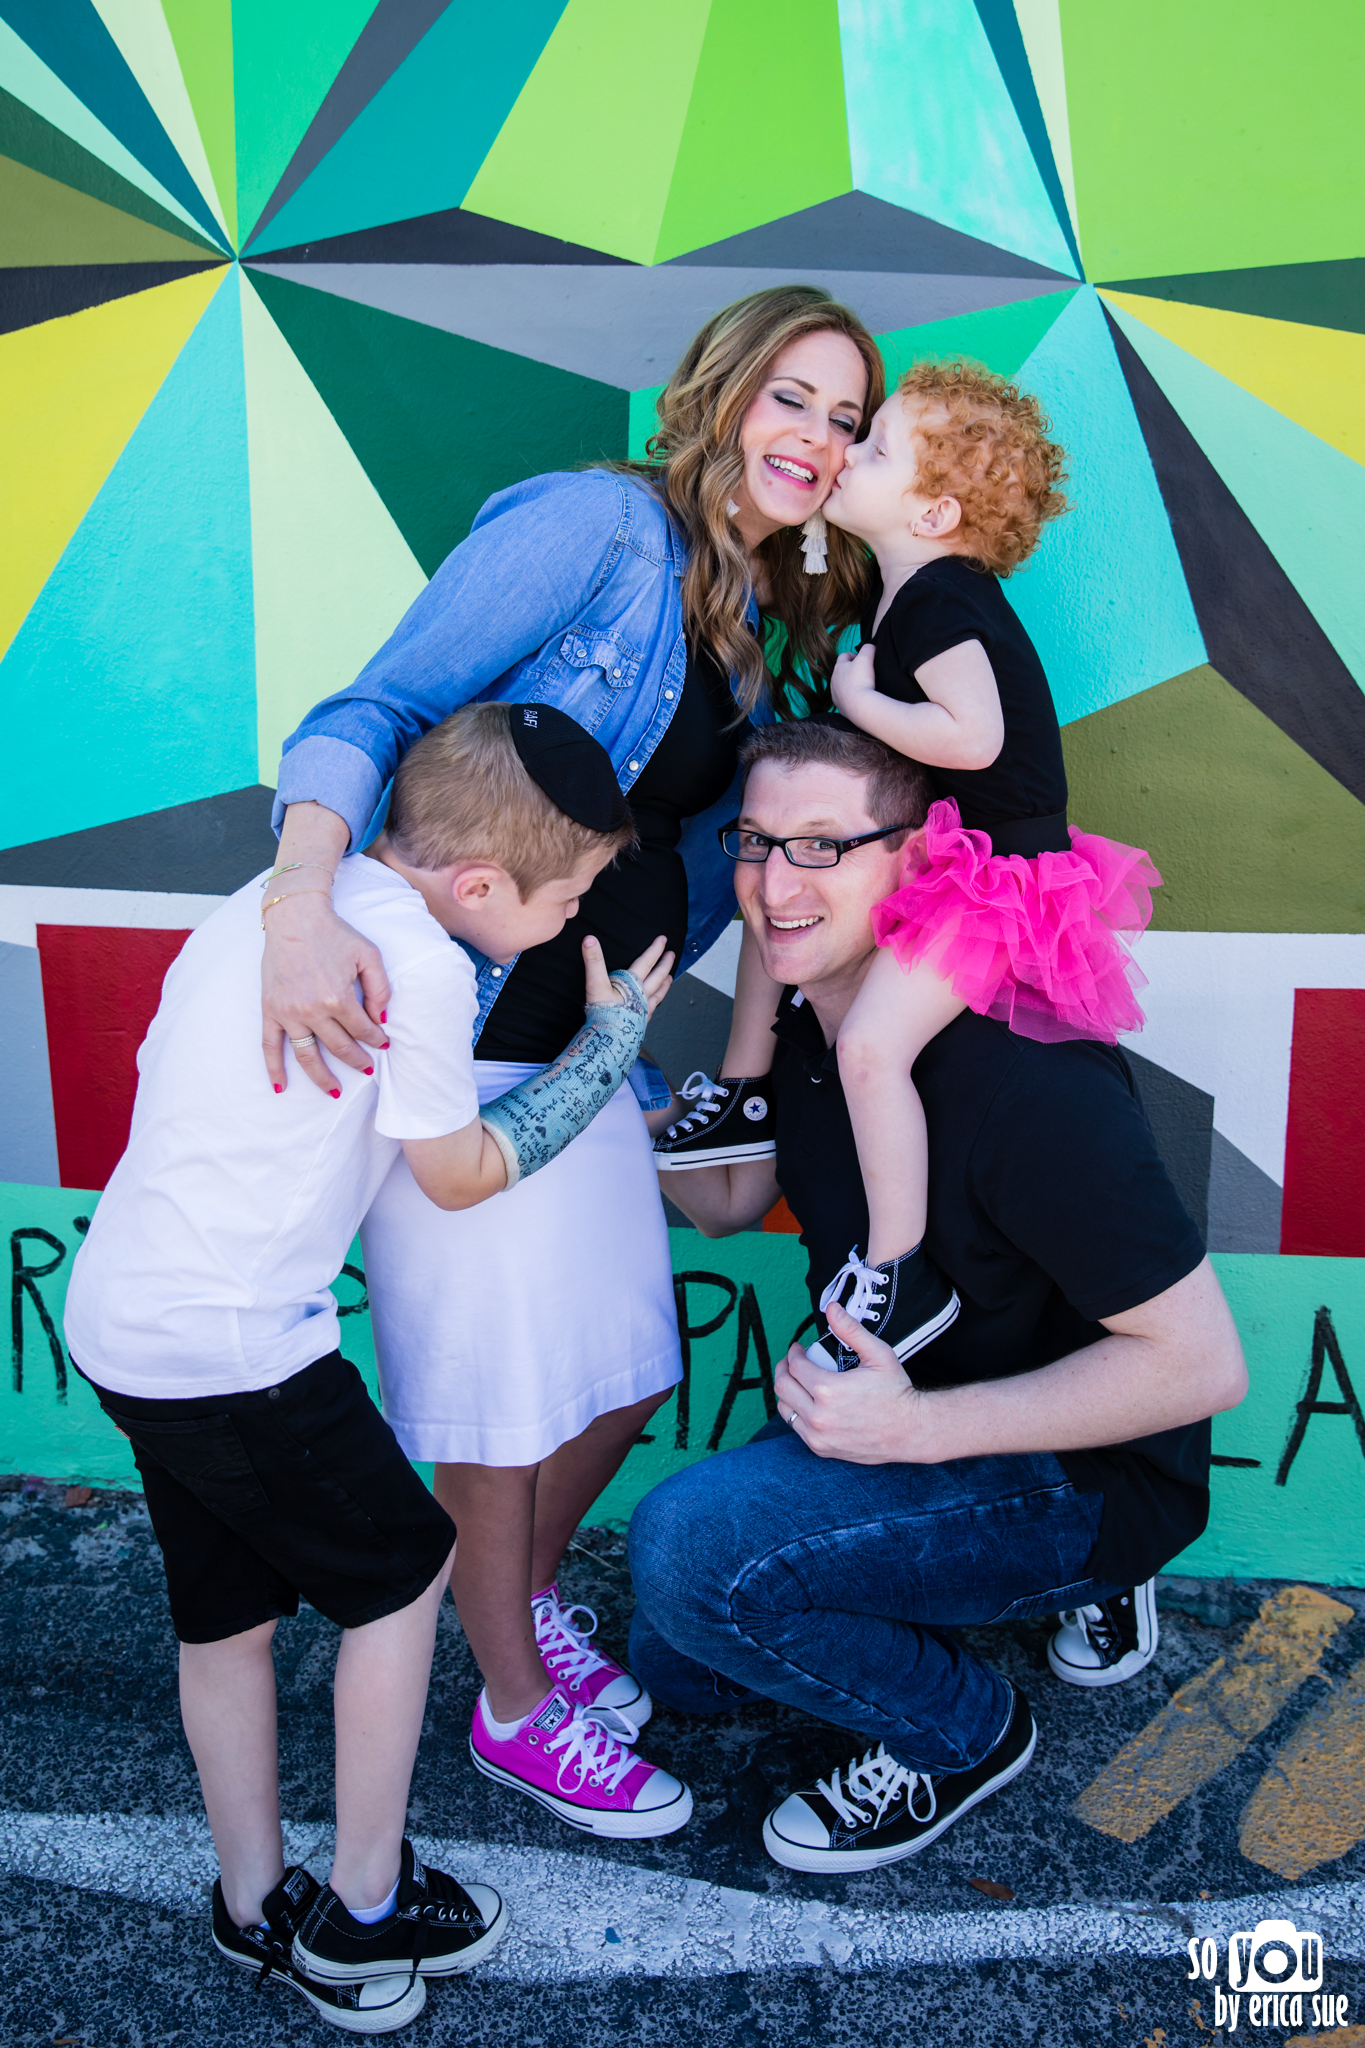 wynwood-family-photography-so-you-by-erica-sue-ft-lauderdale-davie-miami-fl-florida-2475.jpg